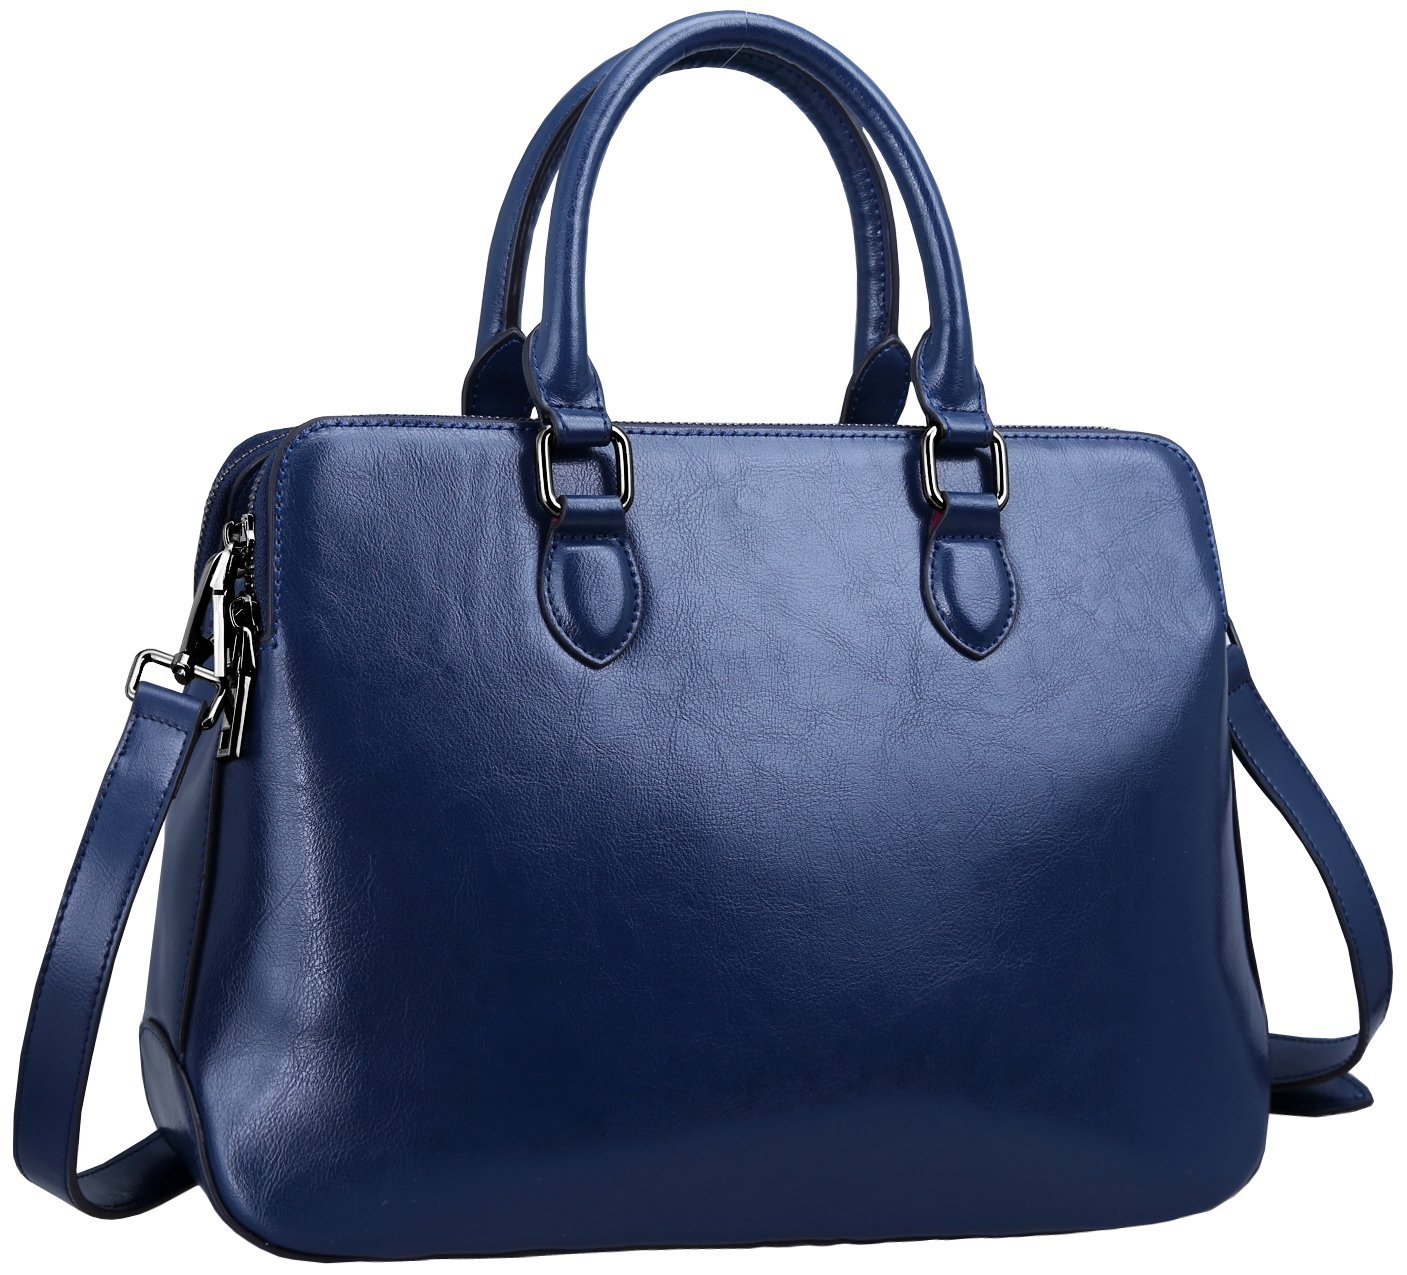 Heshe Leather Womens Handbags Totes Top Handle Shoulder Bag Satchel Ladies Purses (Dark Blue-r)